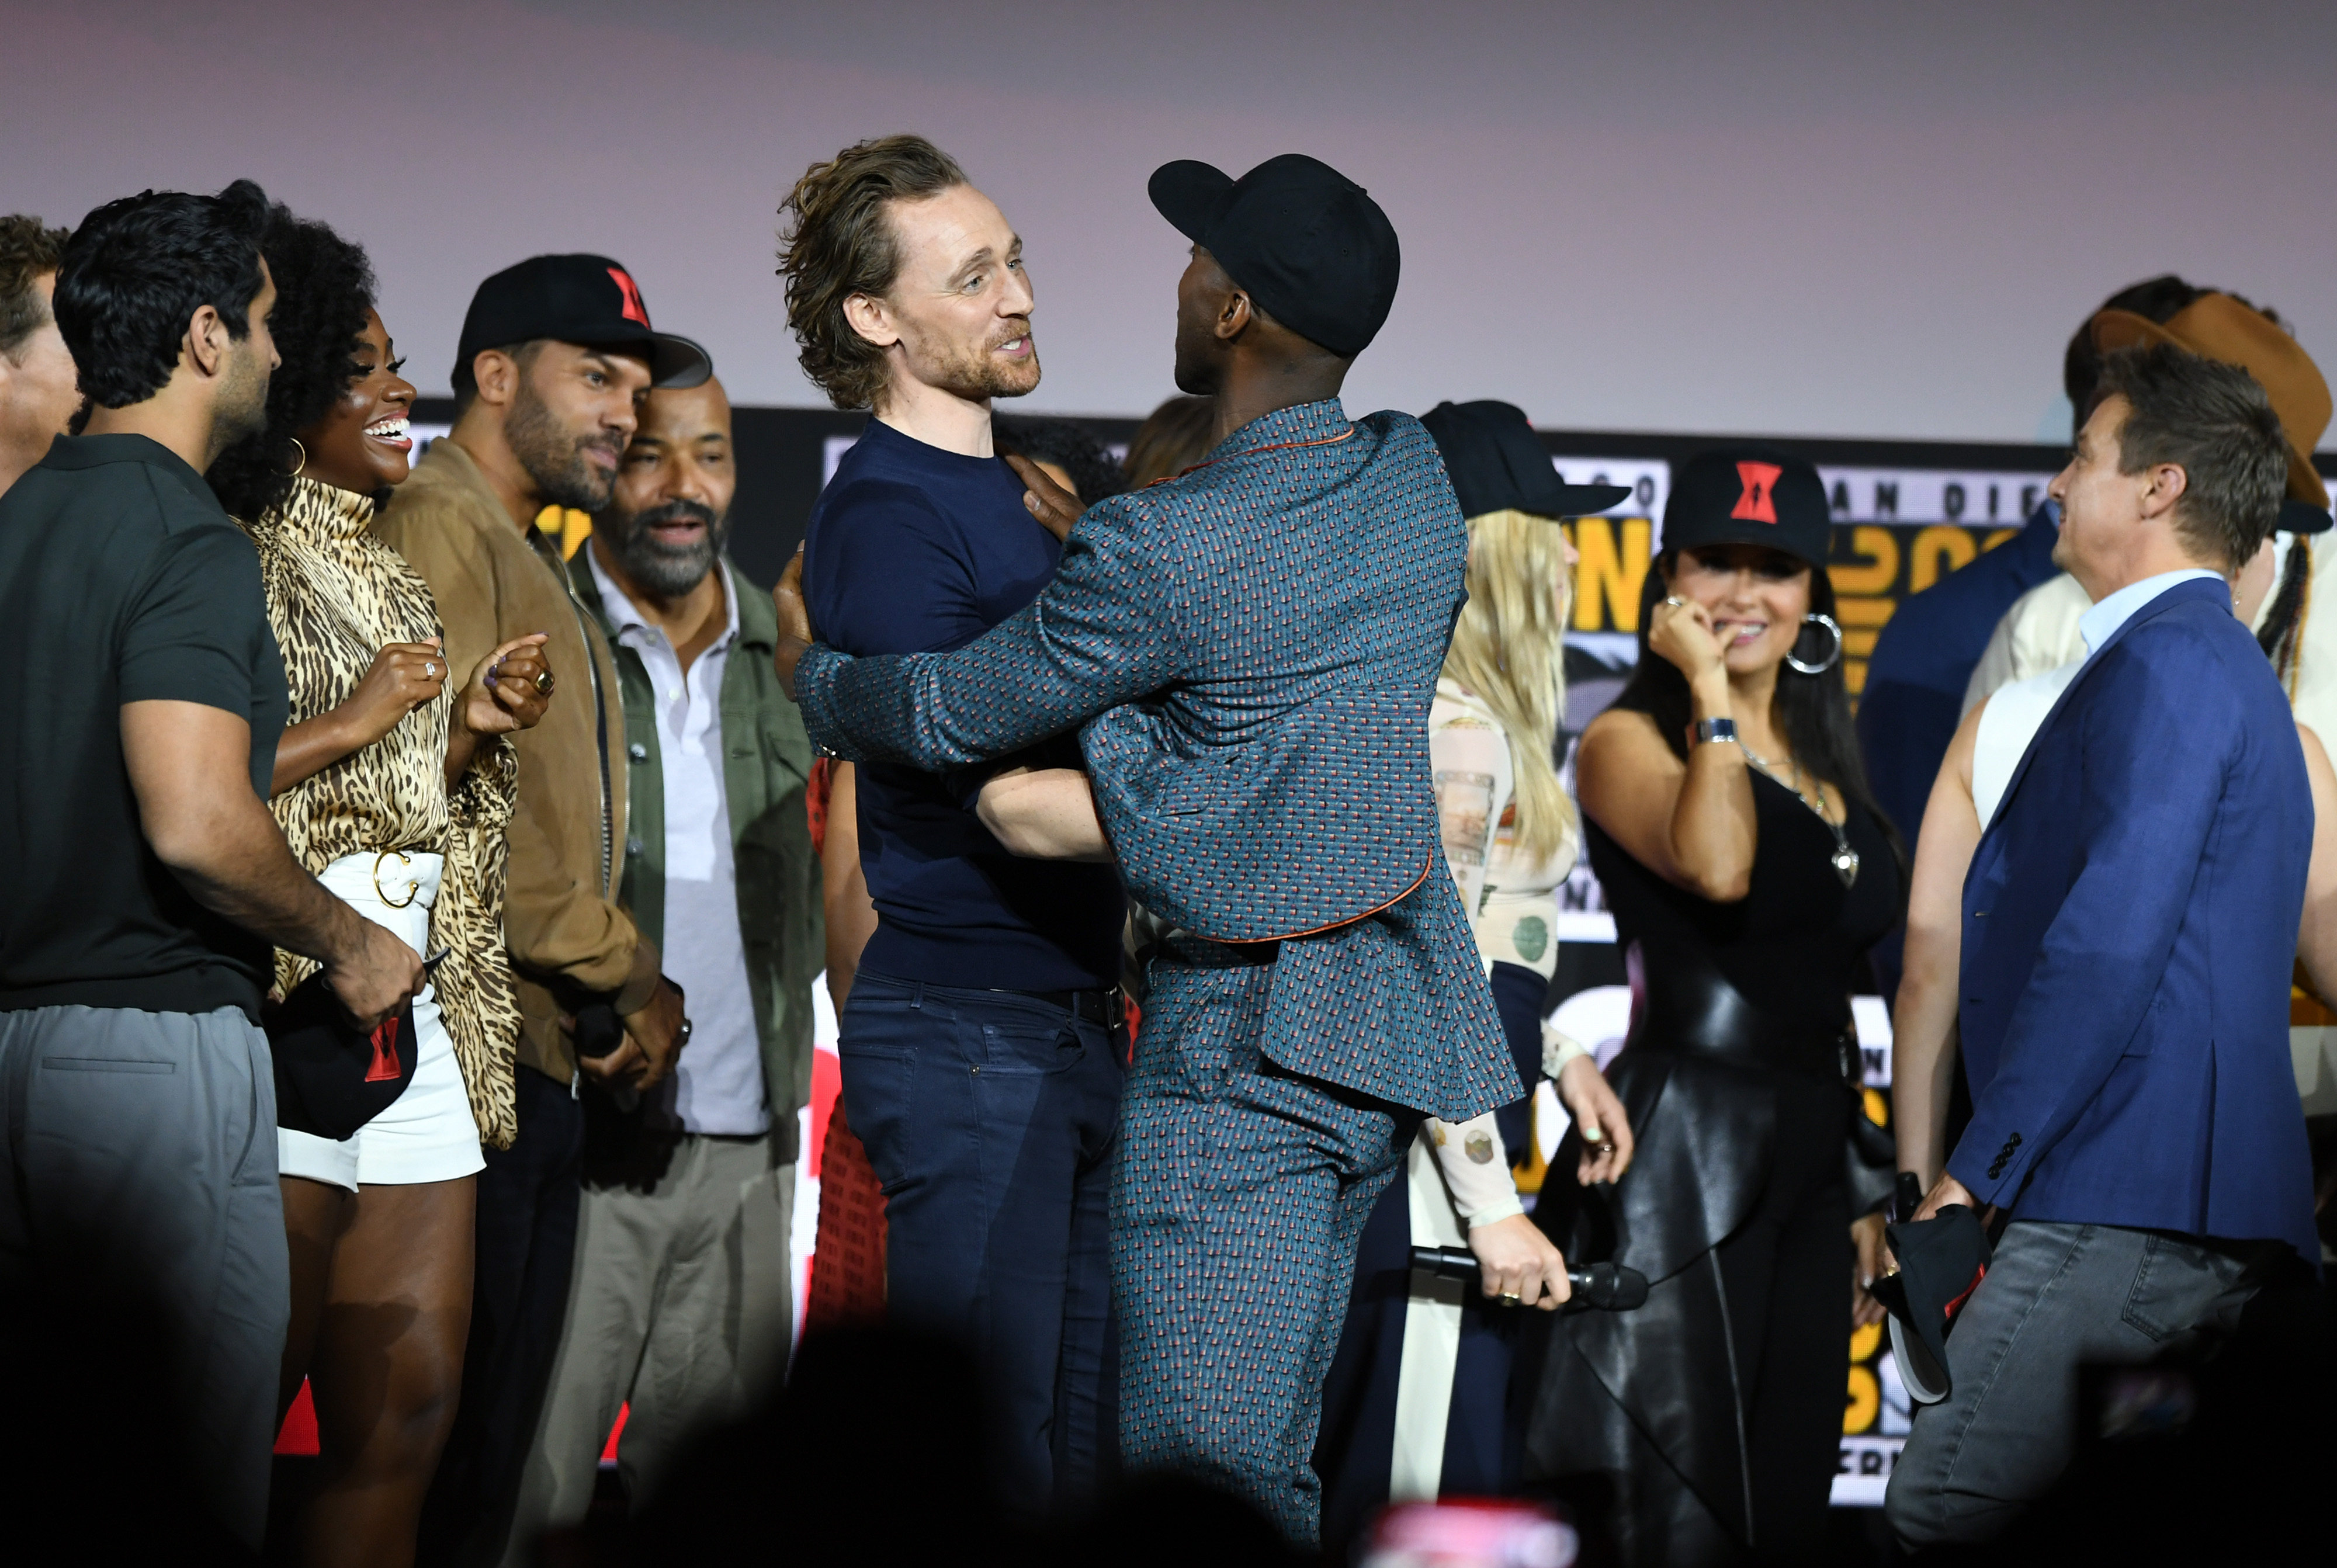 SAN DIEGO, CALIFORNIA - JULY 20: Tom Hiddleston and Mahershala Ali (C) speak at the Marvel Studios Panel during 2019 Comic-Con International at San Diego Convention Center on July 20, 2019 in San Diego, California. (Photo by Kevin Winter/Getty Images)